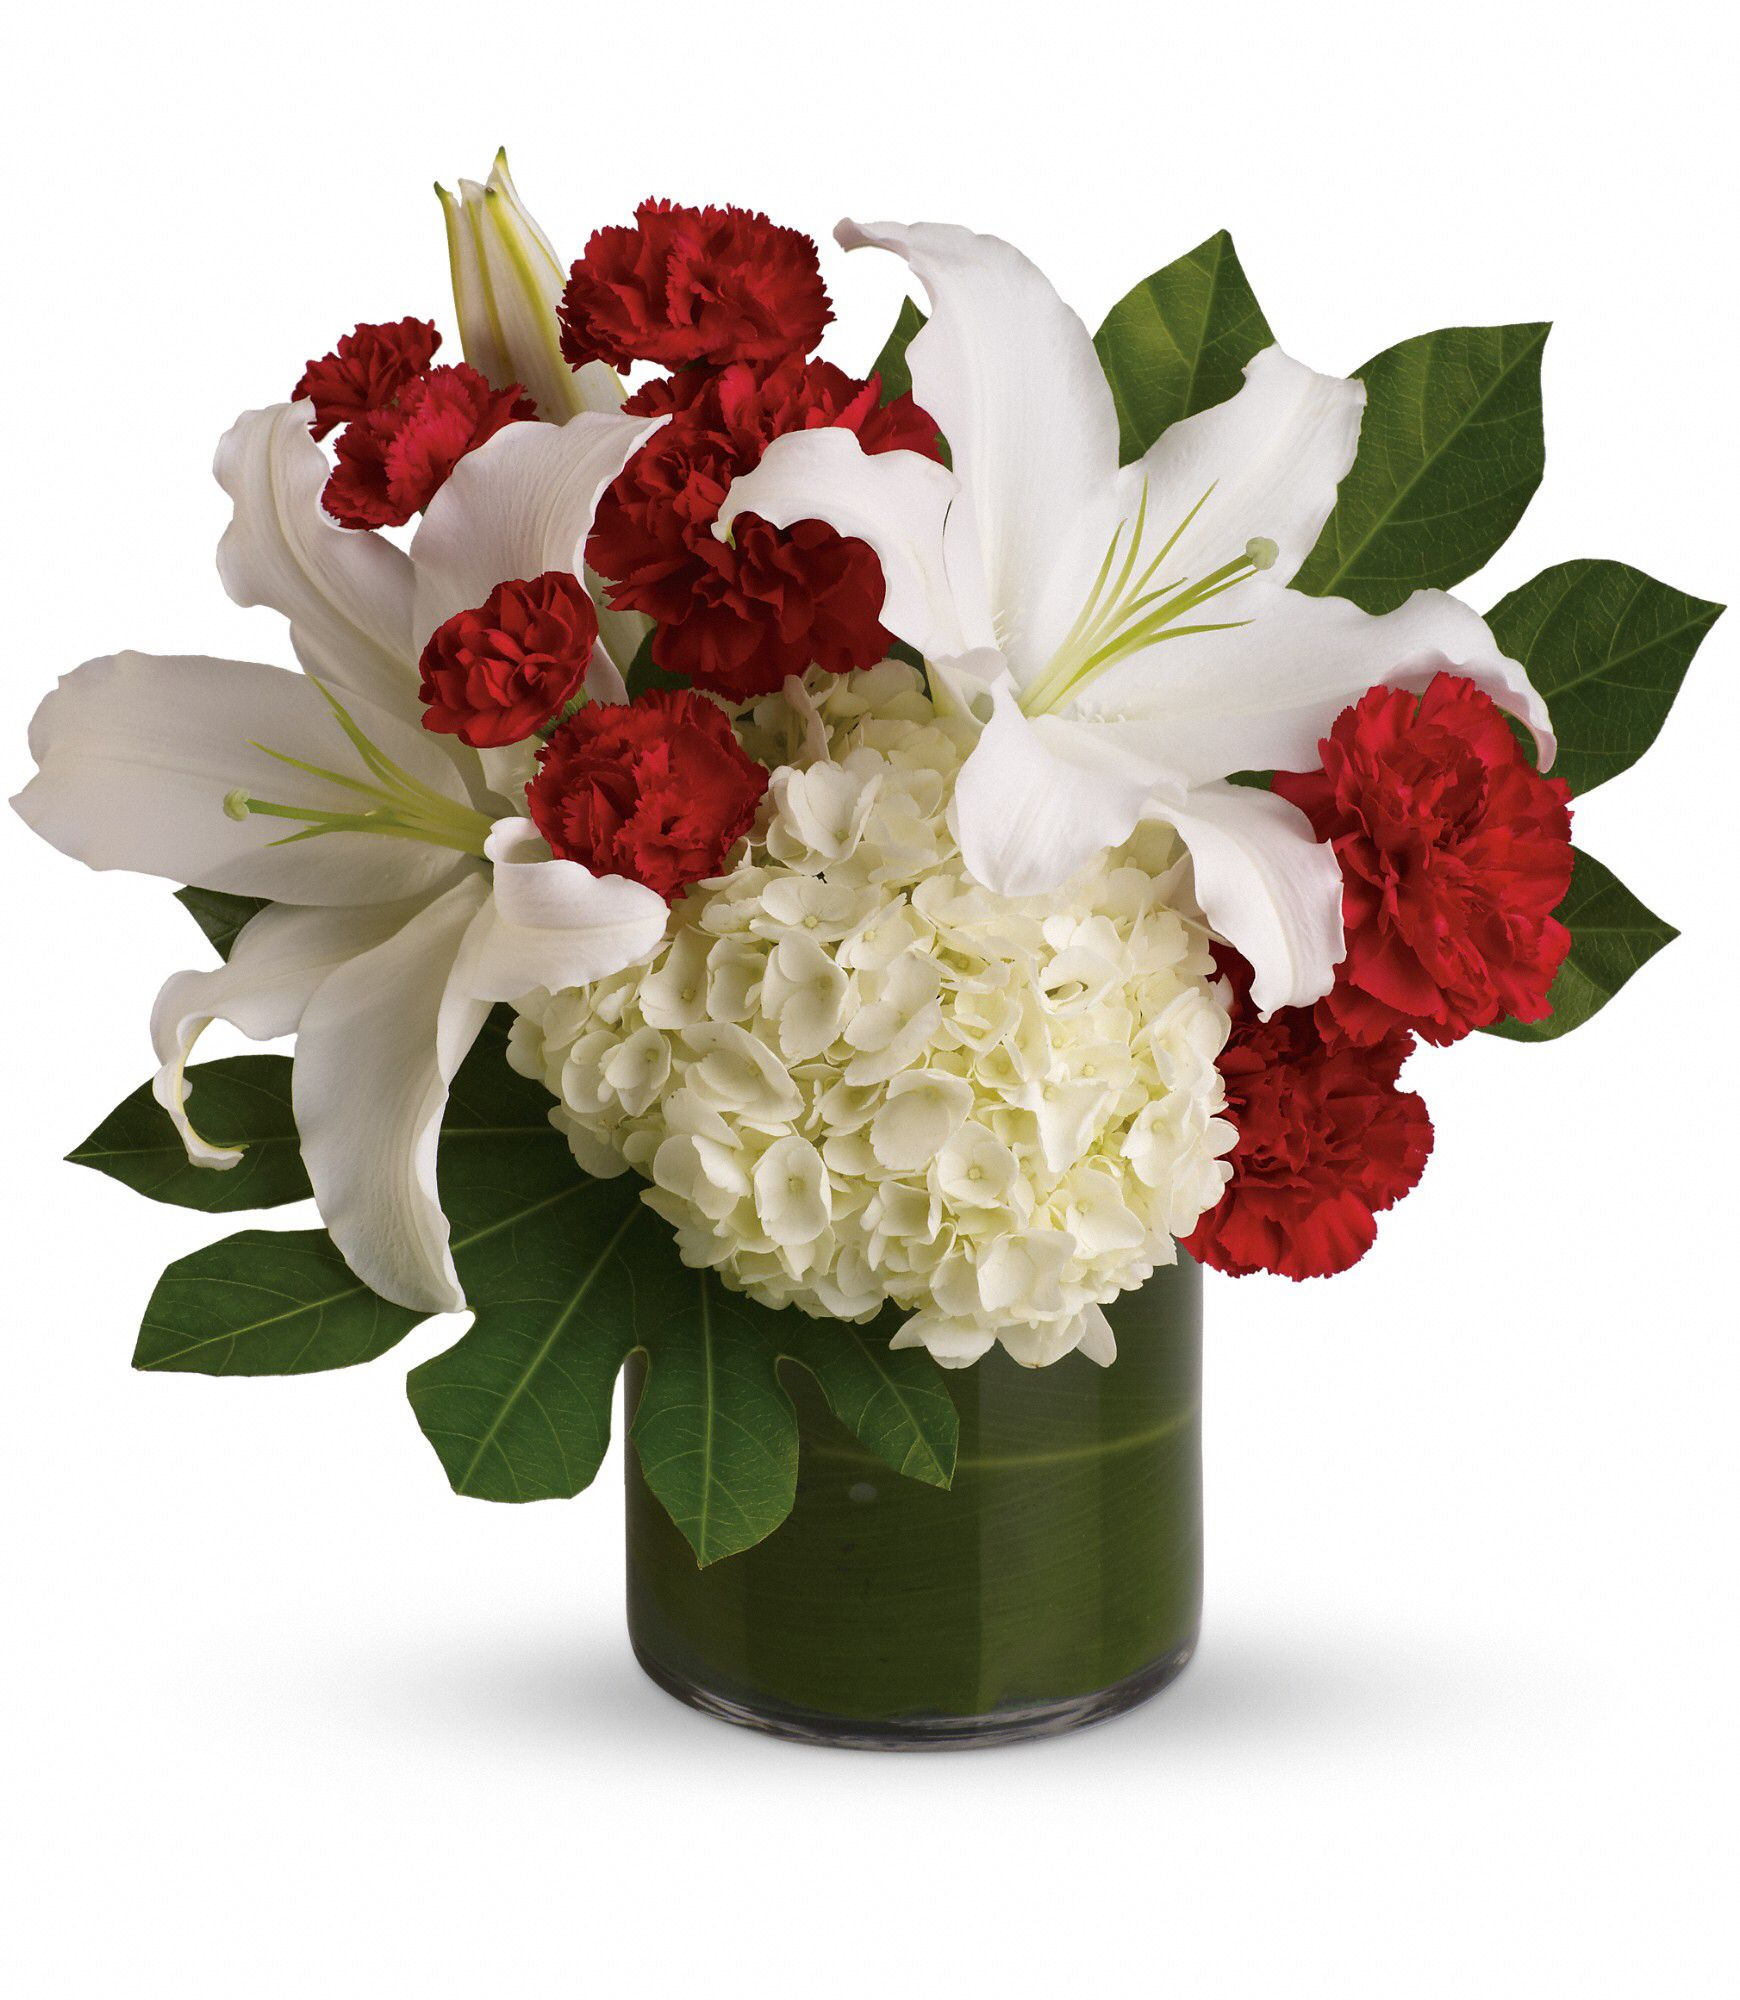 celebrate valentines day with flowers from mancusos florist located in metro detroit michigan red